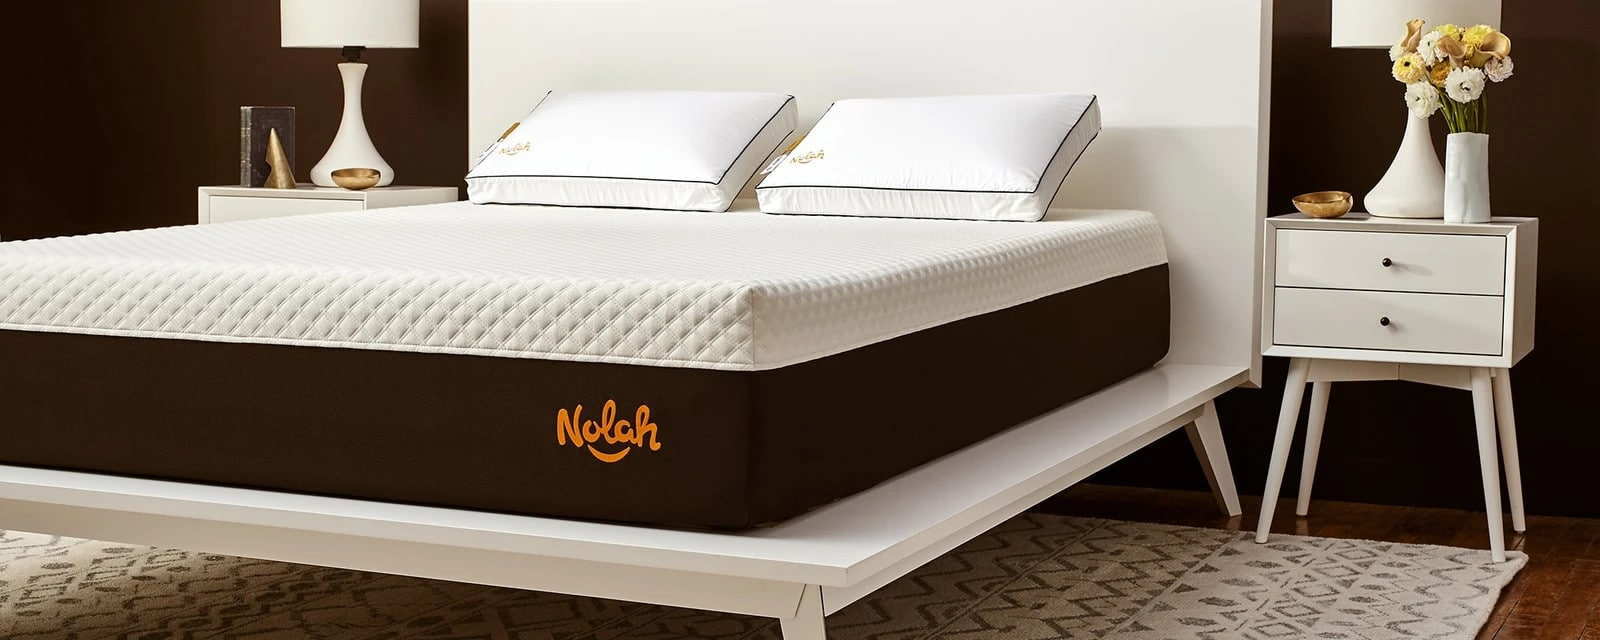 which nolah mattress is better the 10 or 12 inch?